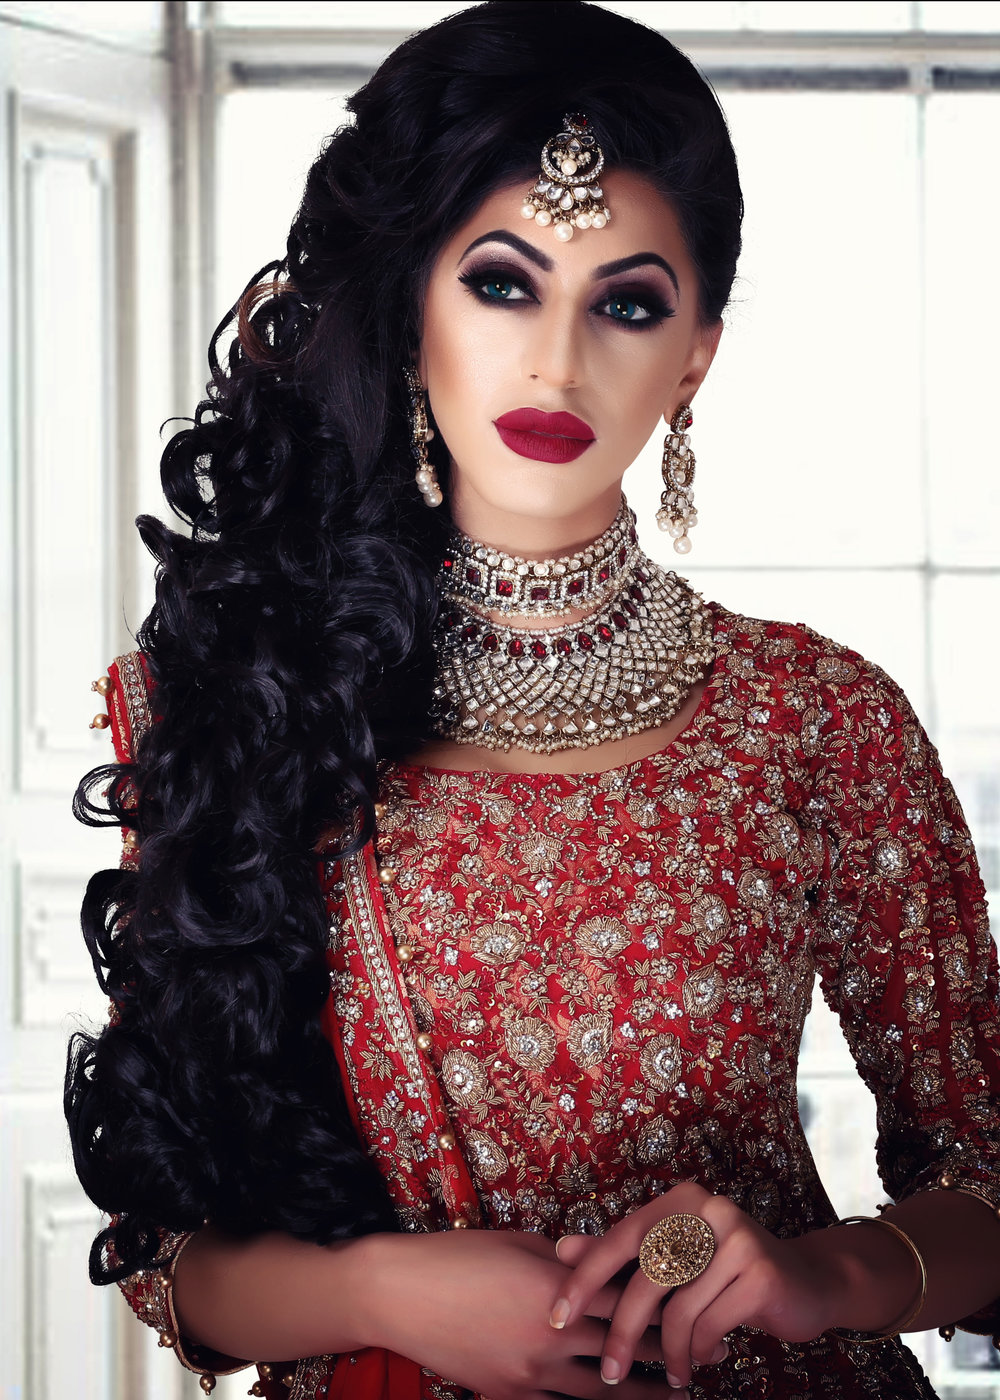 5 DAY - INTENSIVE BRIDAL MAKEUP & HAIR: - Summary:- 10 Makeup Looks- Day/Natural- Evening/Party- Registry/Walima- Classic Bridal- 3 Smokey Eye- Heavy Bridal- Media/ Photographic-10 Hairstyles- Traditional & Modern- Party, Registry, BridalFEES: £1395